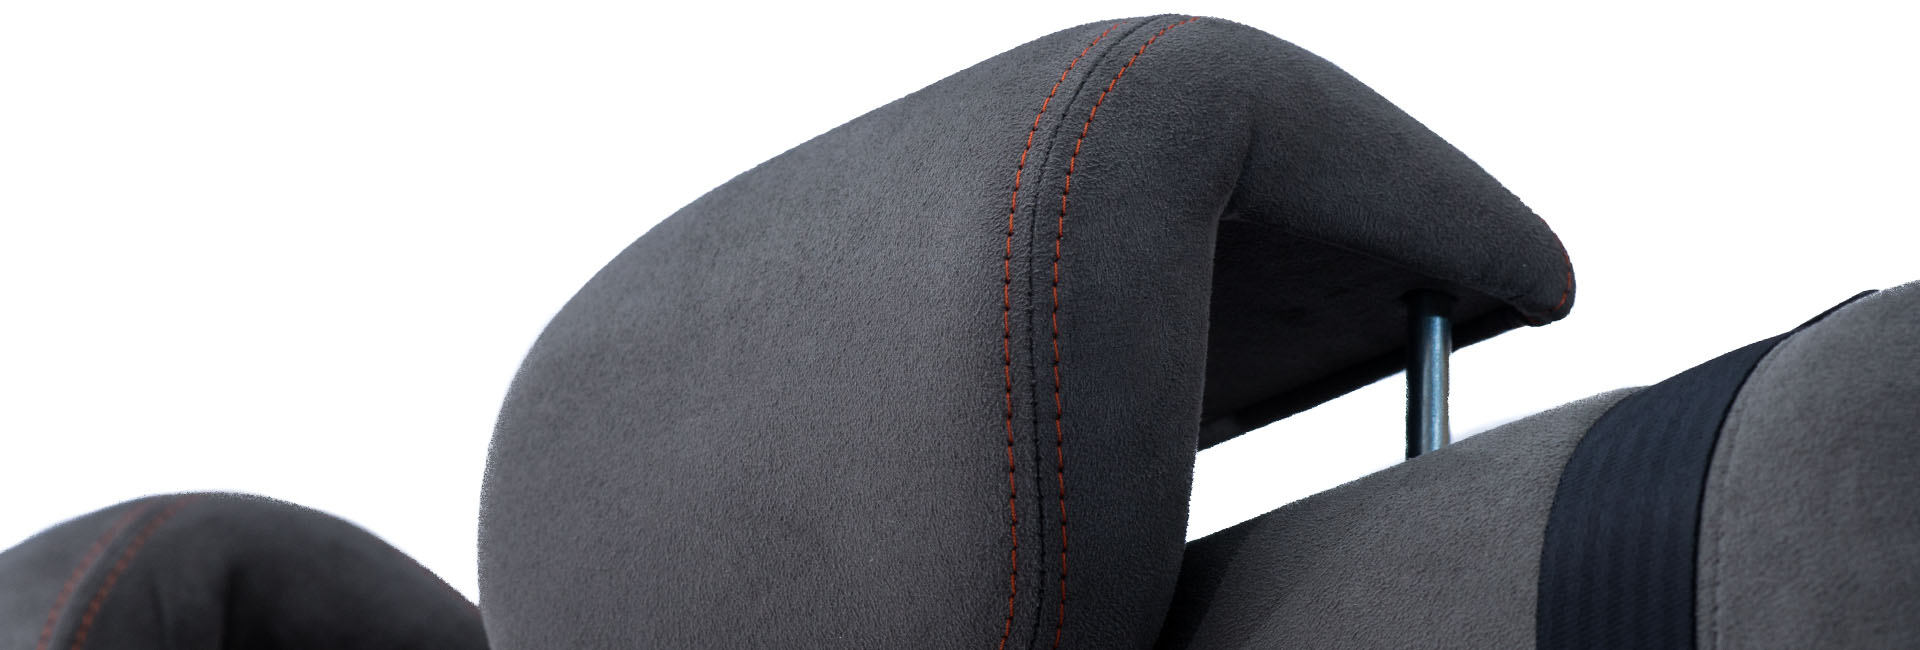 rock and roll bed headrest with orange stitching